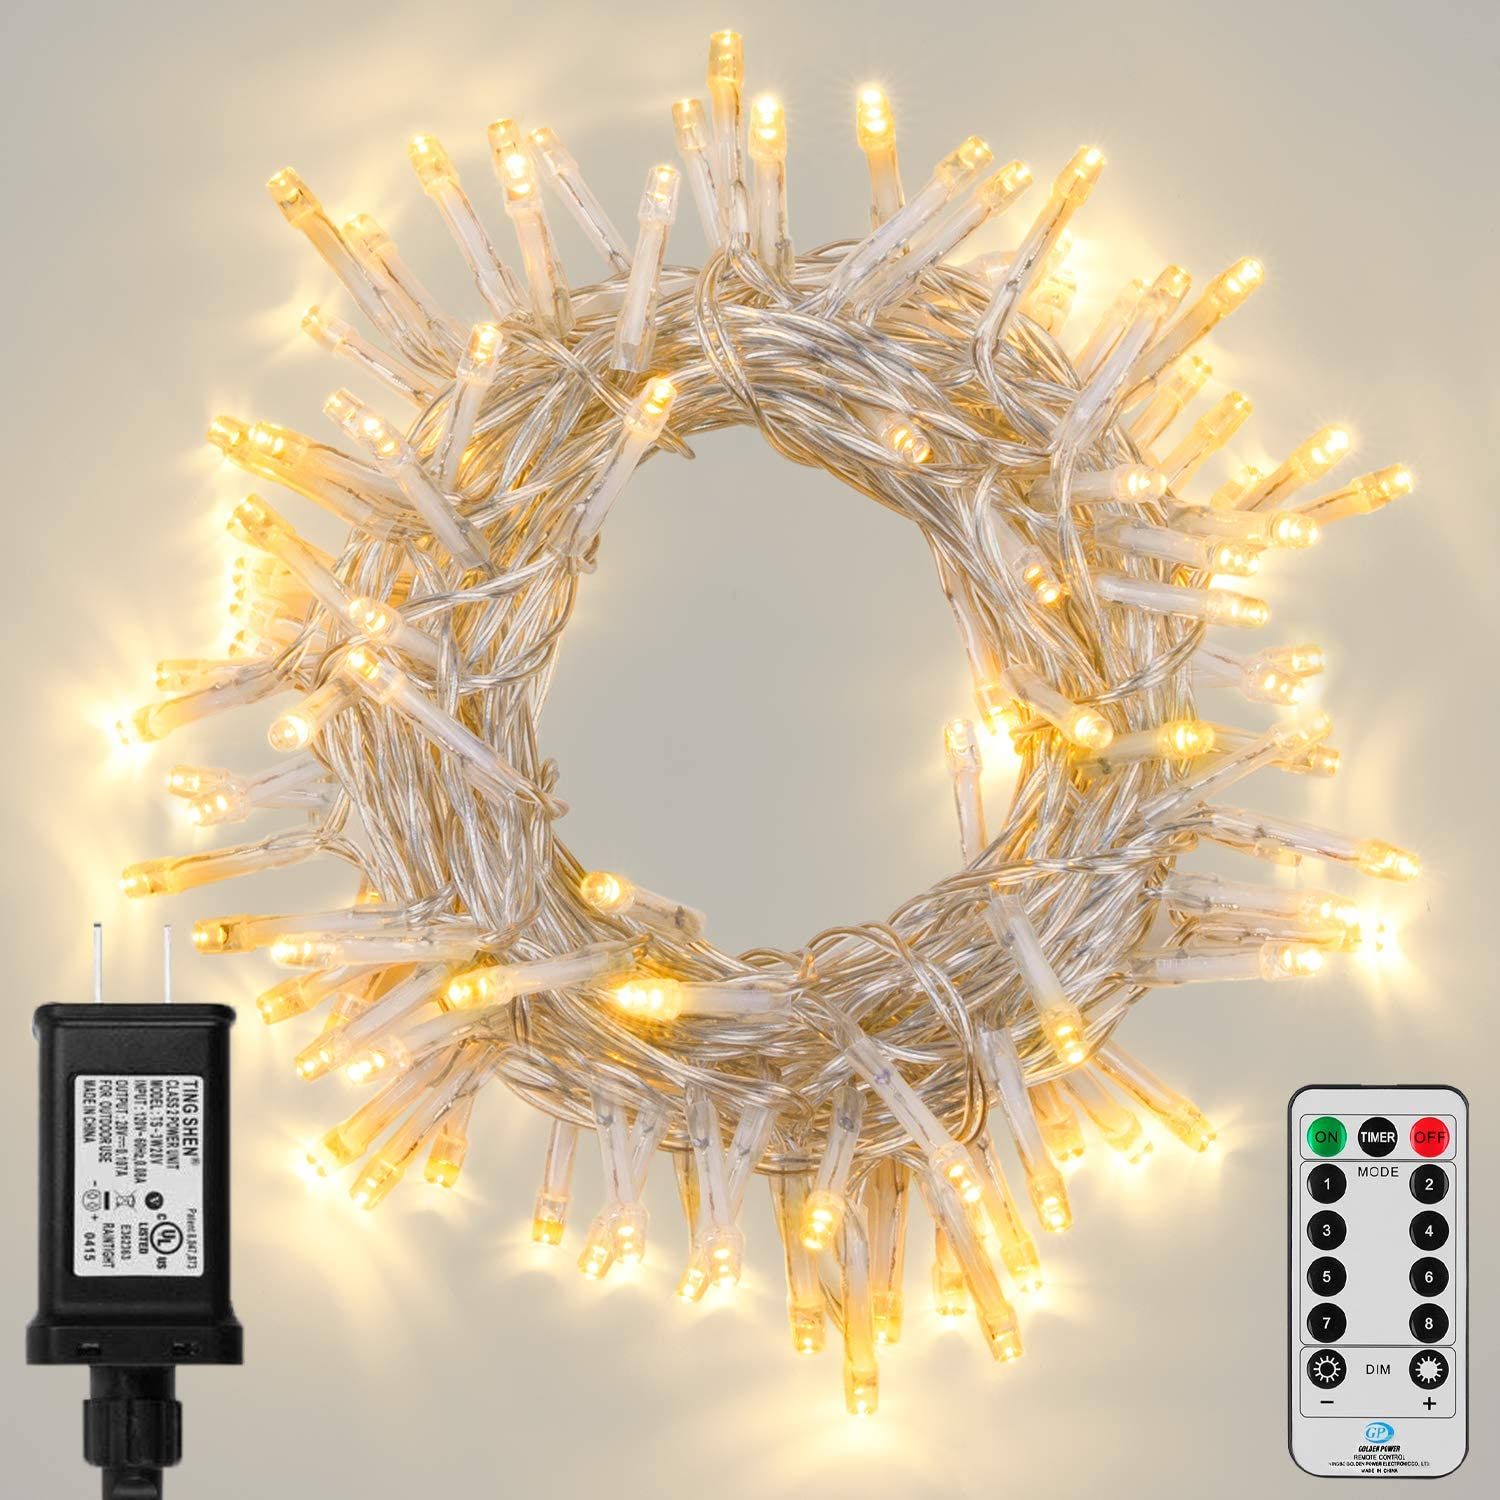 Koxly Outdoor String Lights 800 LED 164FT Long Fairy Tree Light with Remote Control Timer Waterproof Christmas Decorative Extendable Lights Plug in 8 Modes Twinkle Lights for Wedding Party Holiday